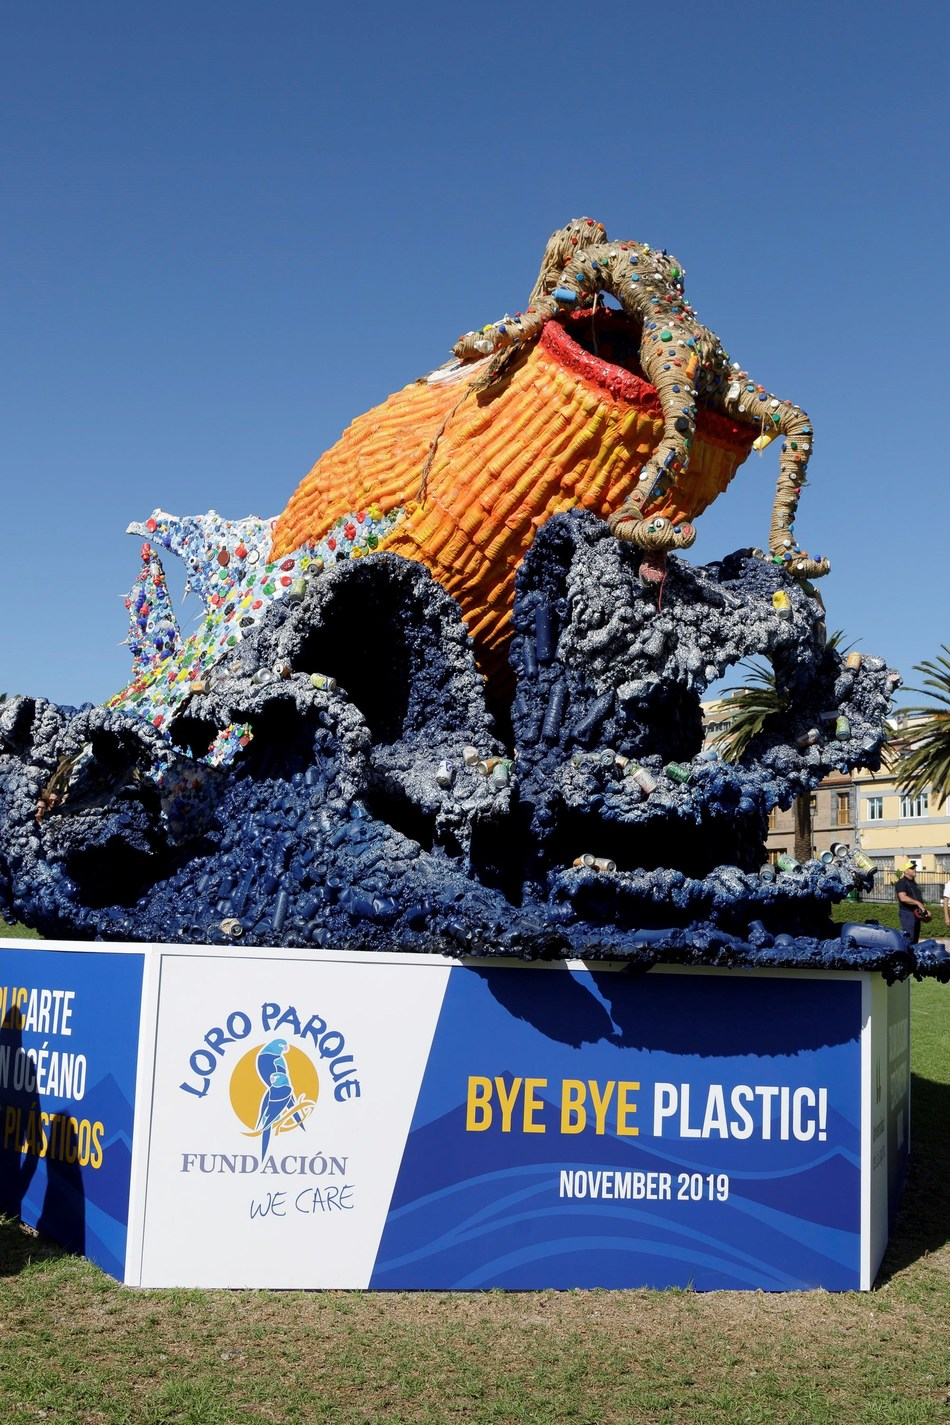 Loro Parque Foundation inaugurates sculpture to raise awareness about plastic.